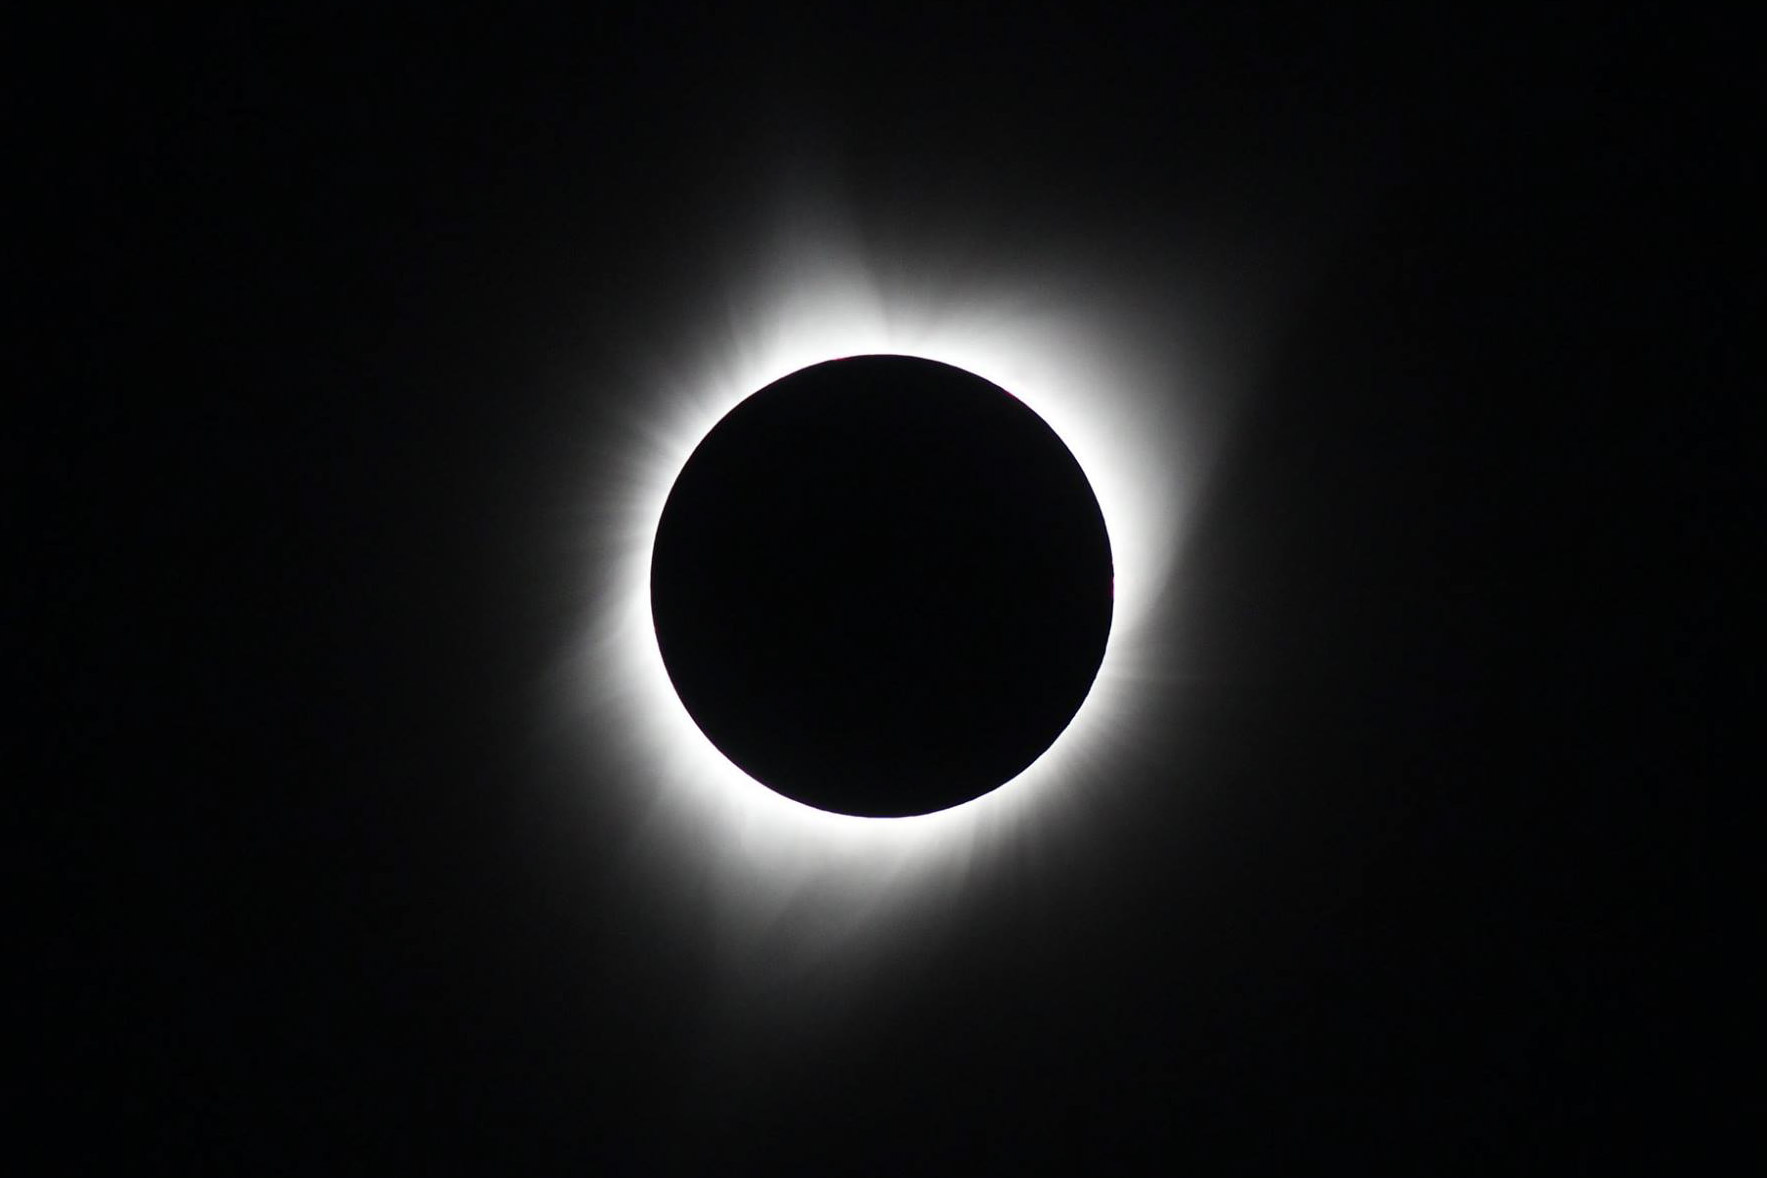 Totale Sonnenfinsternis vom 21. August 2017 in den USA (Marco Ludwig)